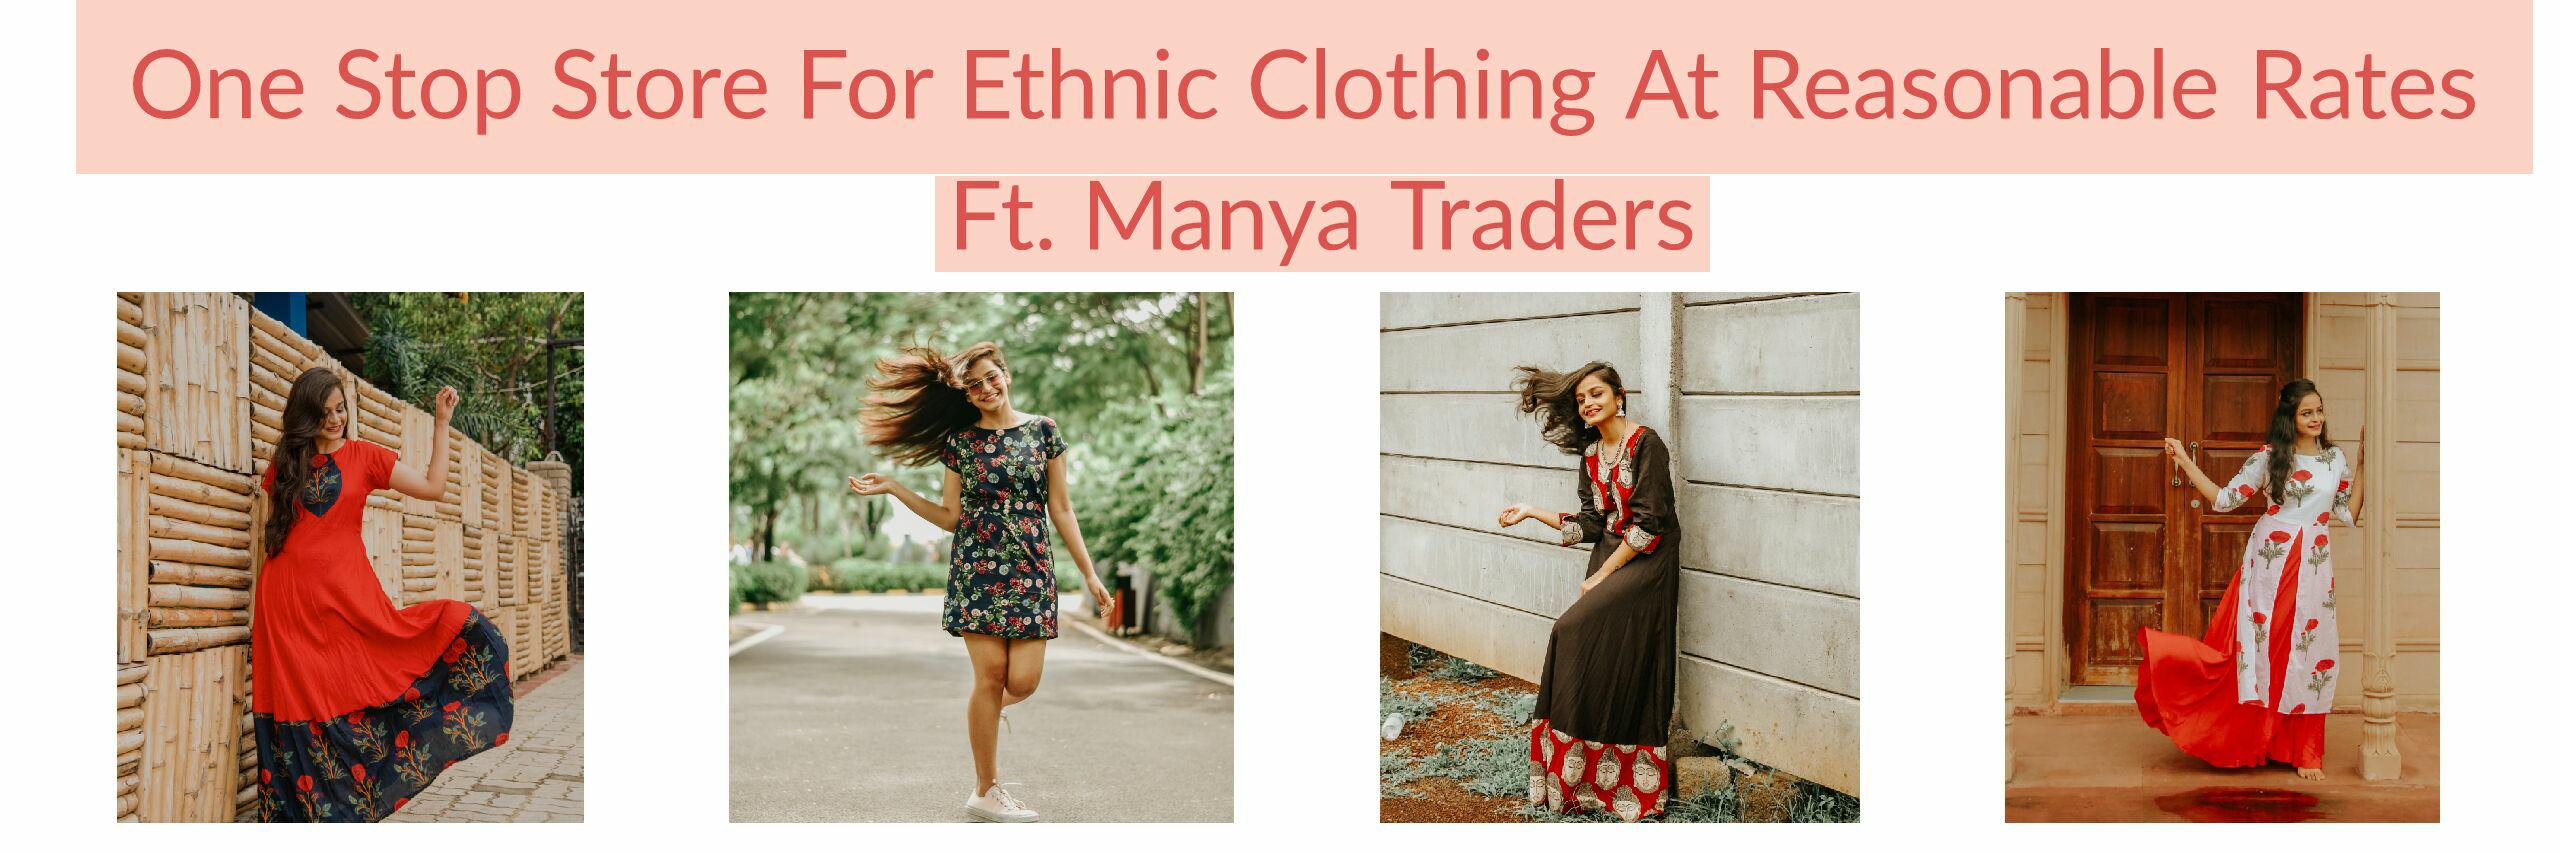 One Stop Store for Ethnic Wear At Reasonable Rates - Manya Traders image